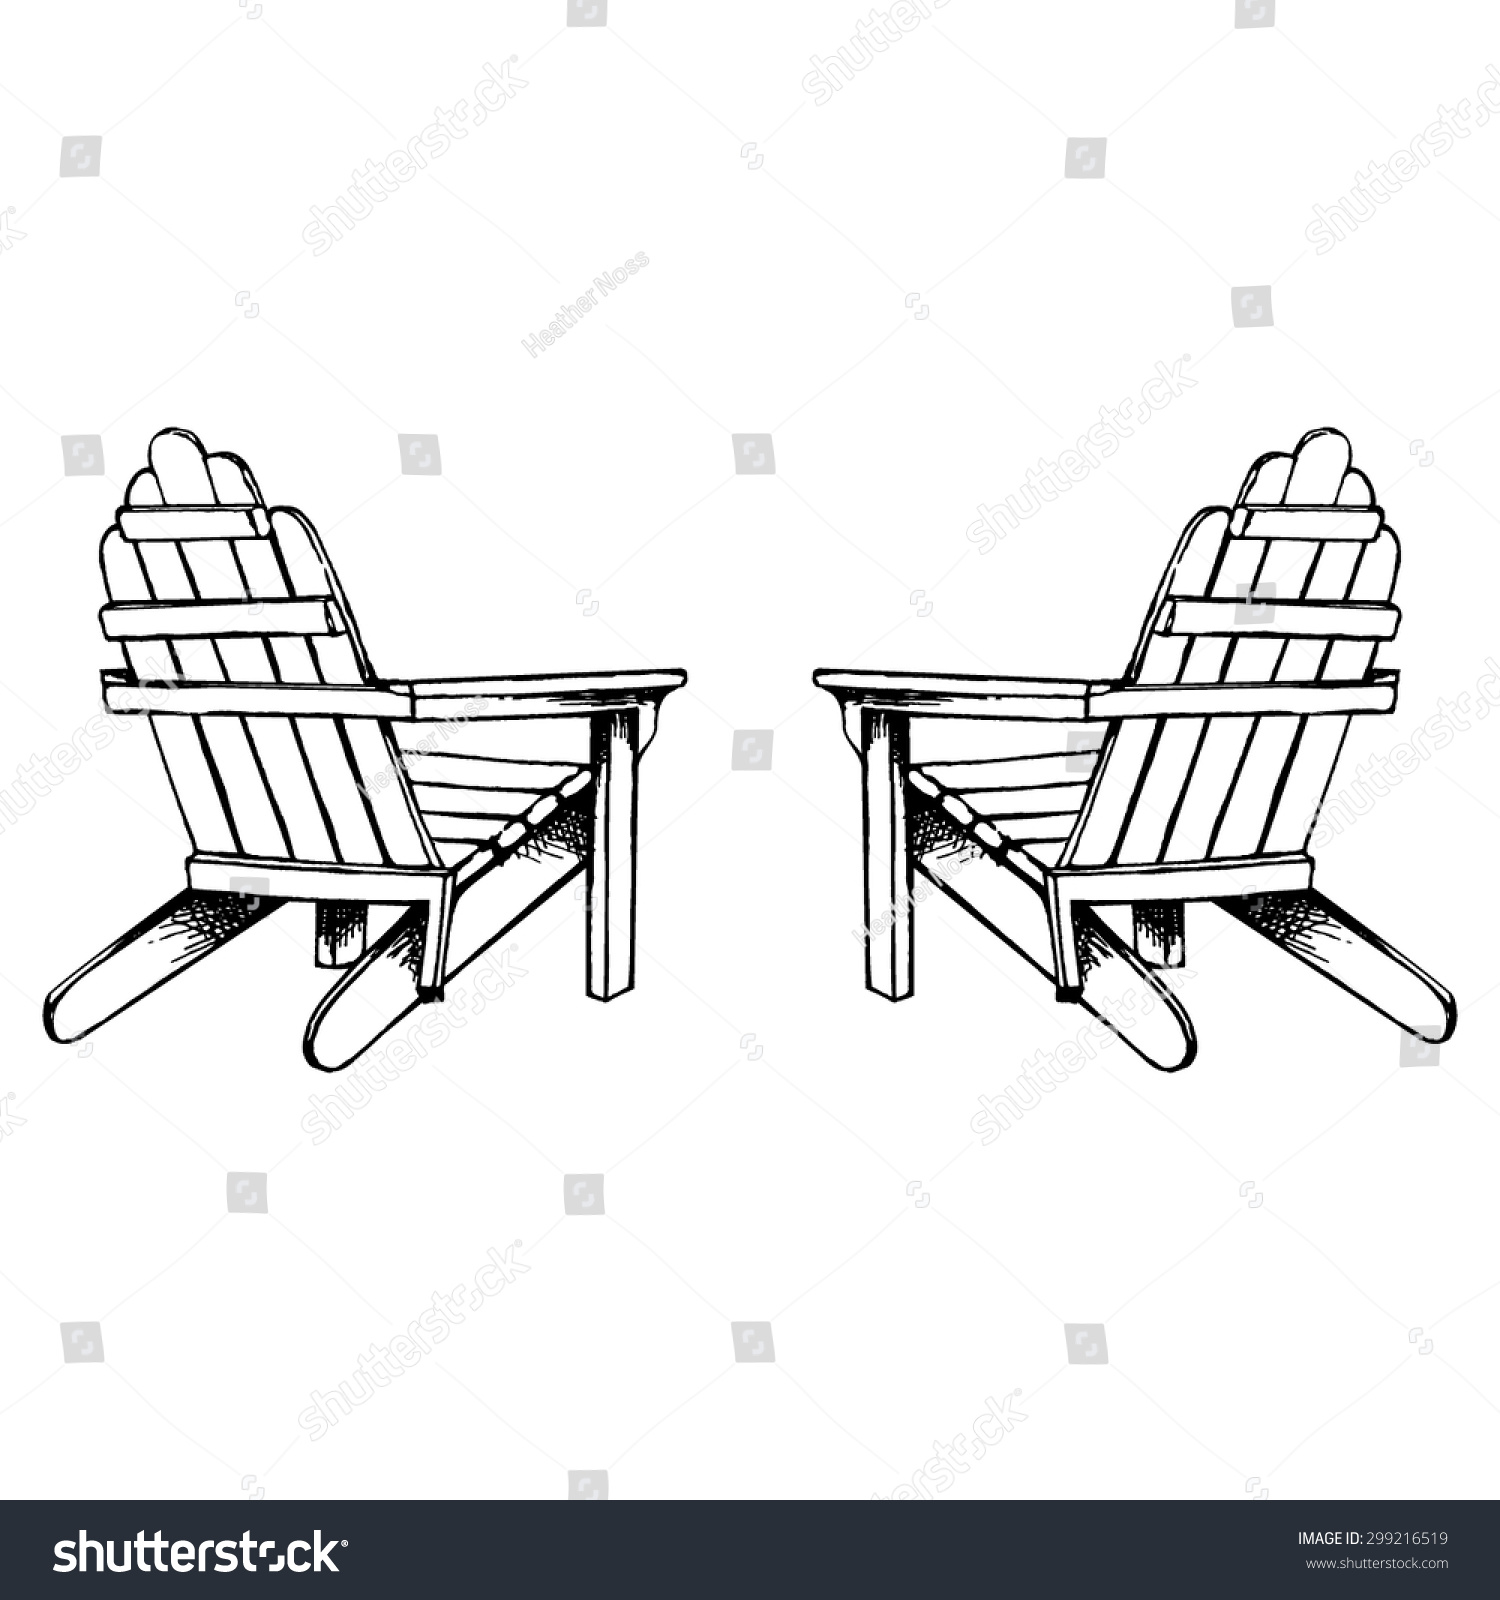 Adirondack chairs clipart